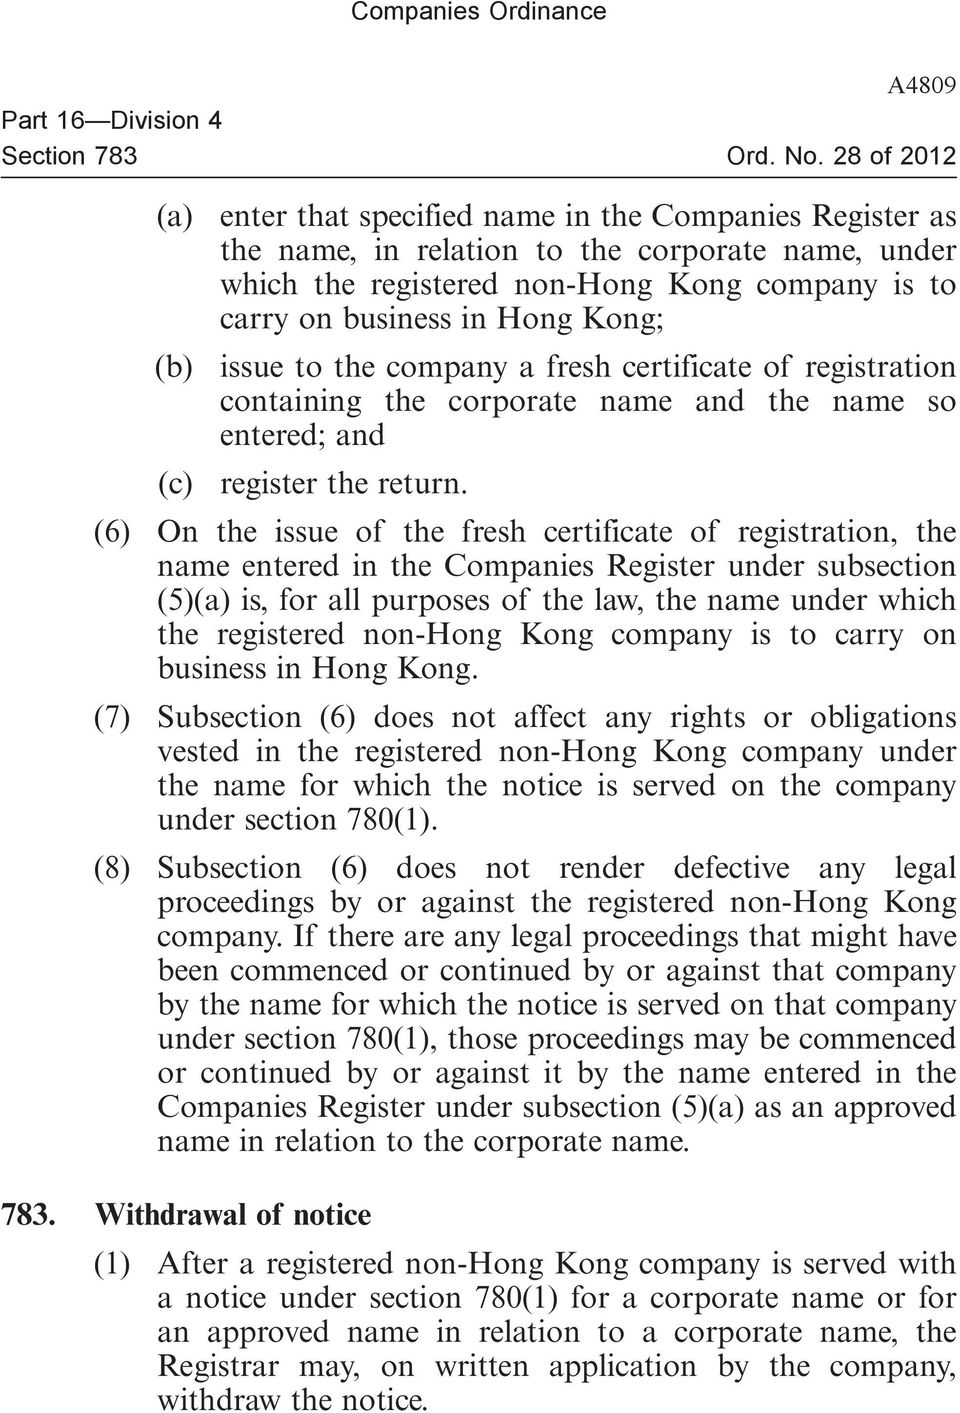 (6) On the issue of the fresh certificate of registration, the name entered in the Companies Register under subsection (5)(a) is, for all purposes of the law, the name under which the registered